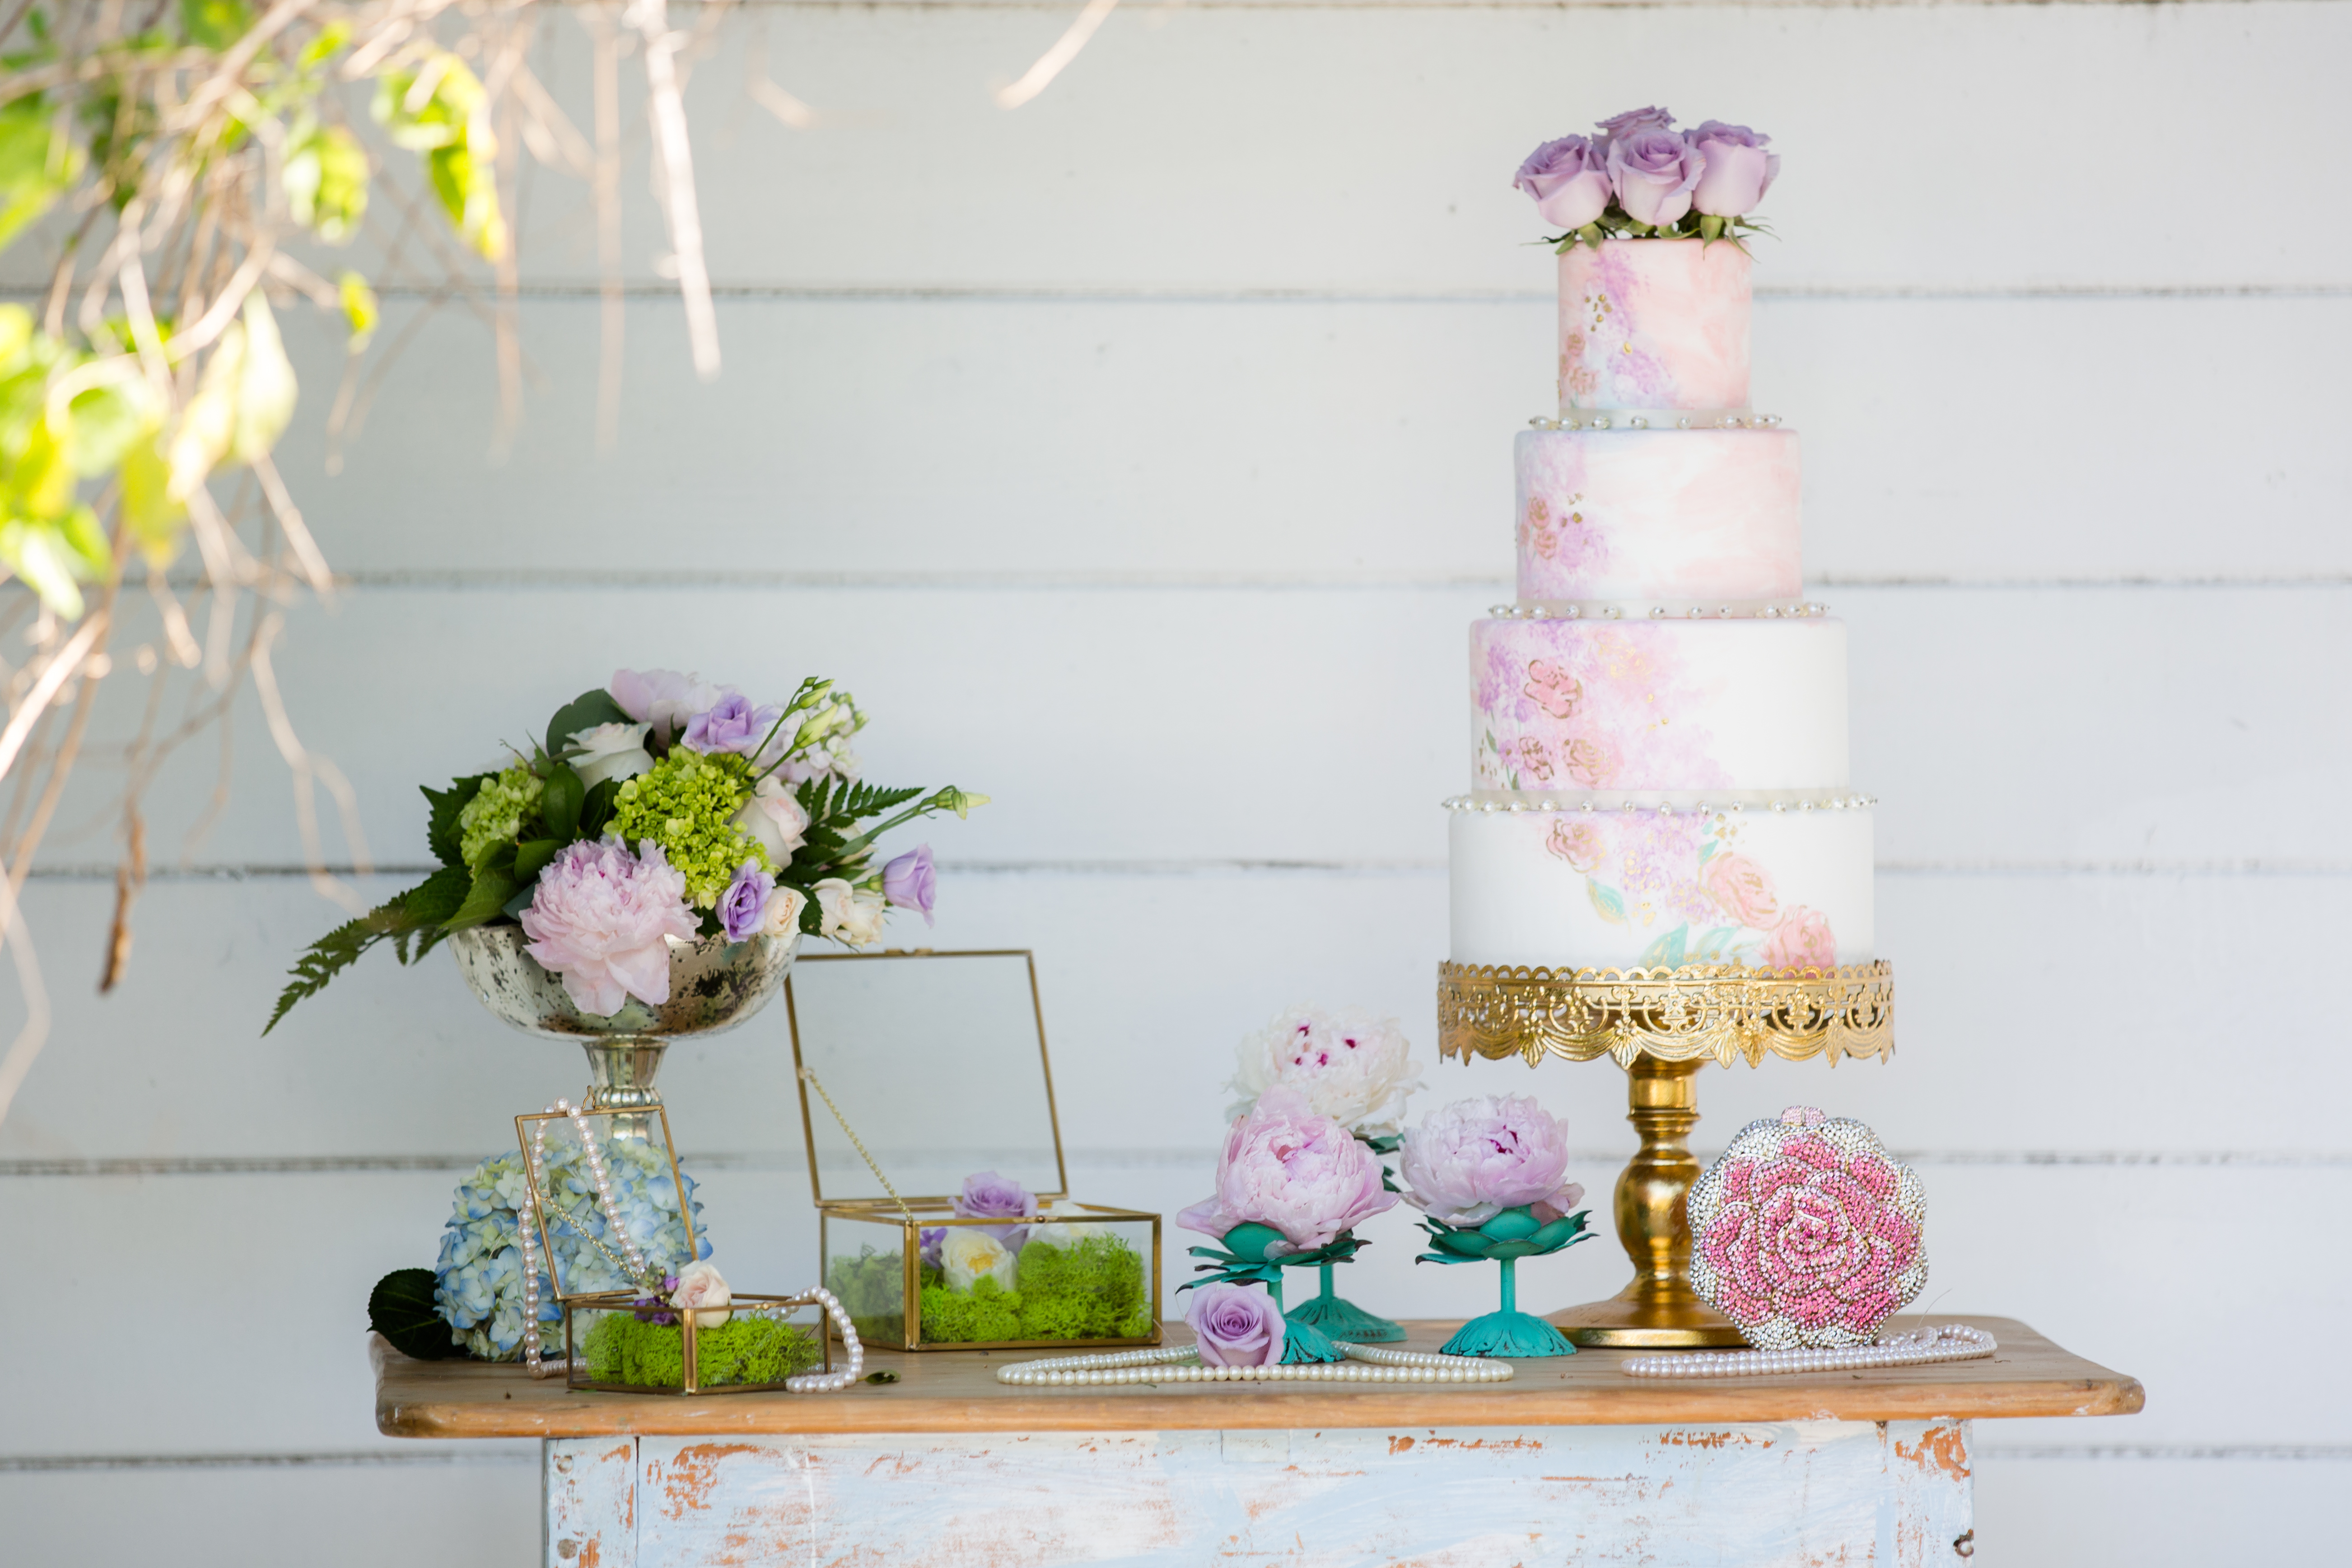 painted-flowers-cake-by-sweet-cheeks-rustic-wedding-sdsw-feature-dap10375